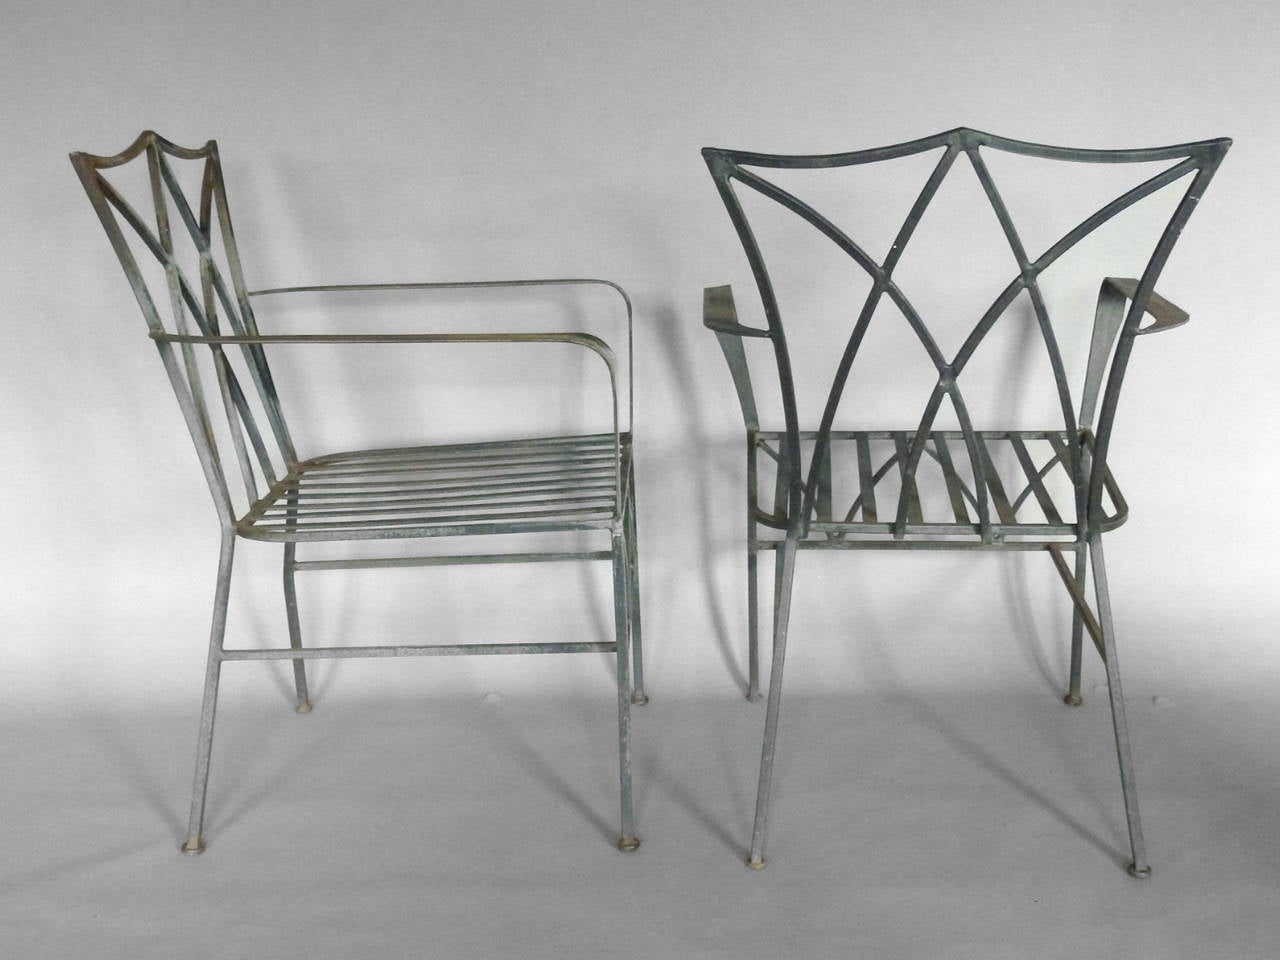 Pair Of Elegant Salterini Wrought Iron Chairs With Table At 1stdibs